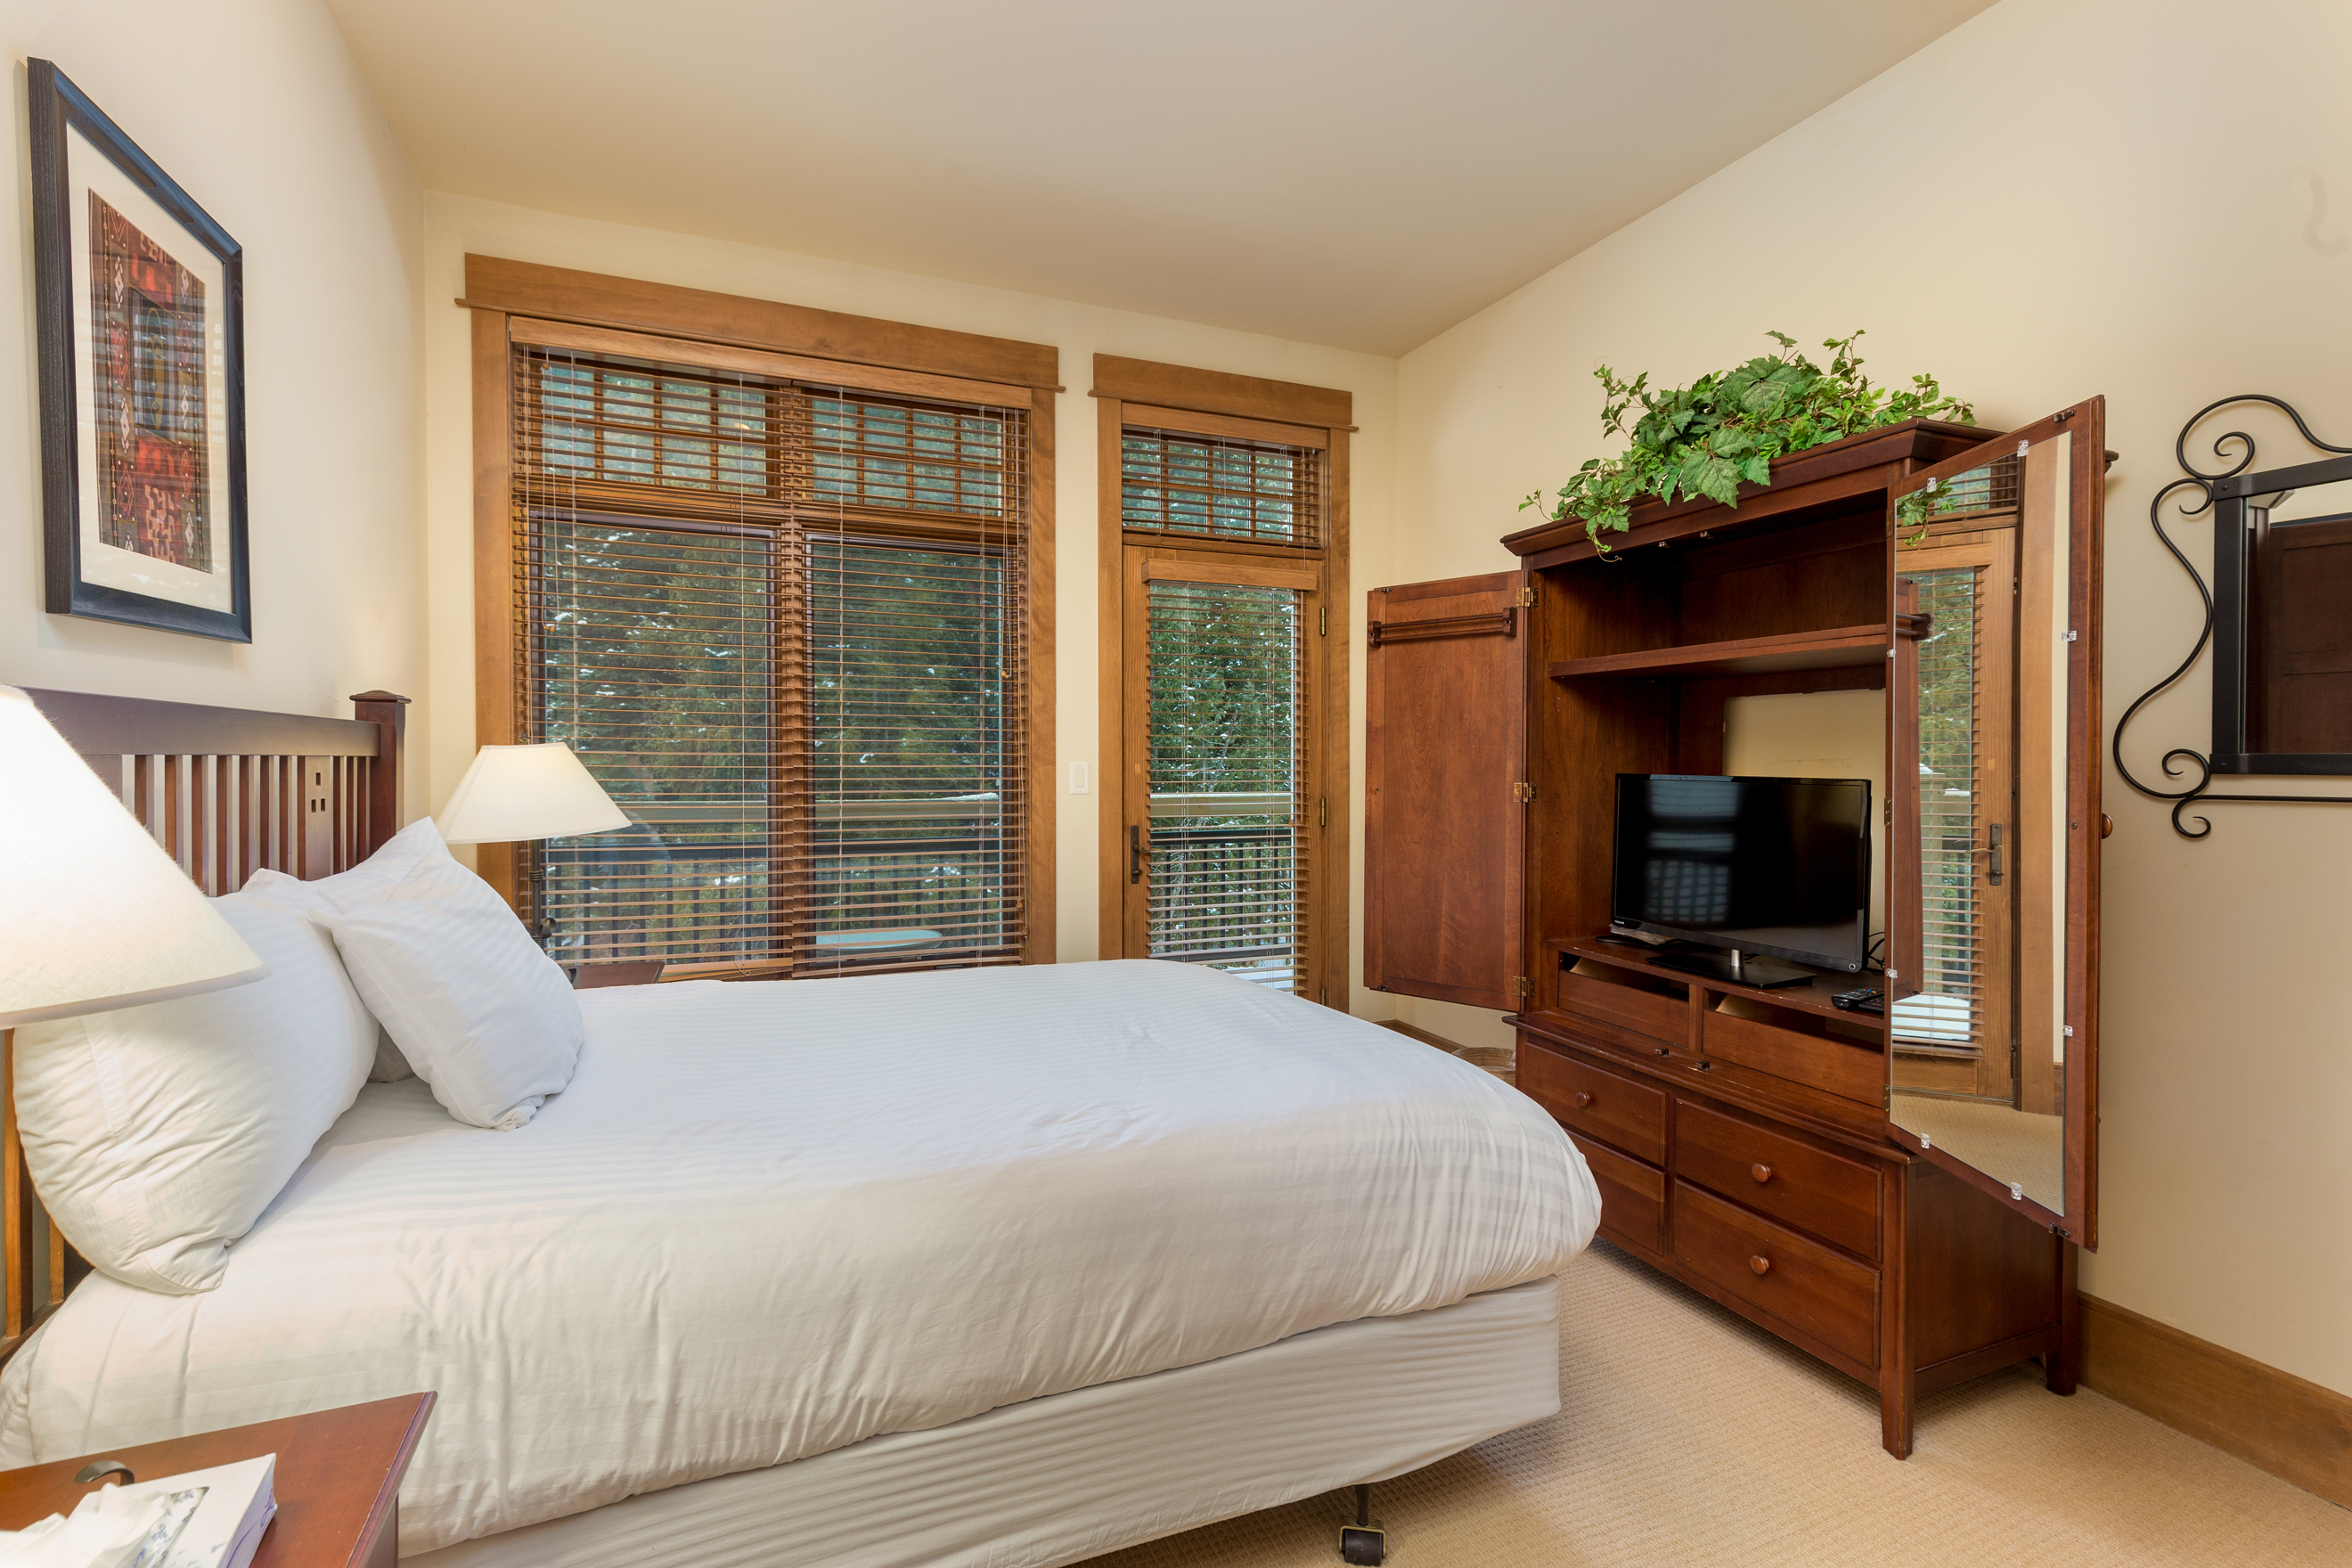 The guest bedroom features a queen-sized bed with Ivory White Bedding, a flat screen TV and access to the main balcony.